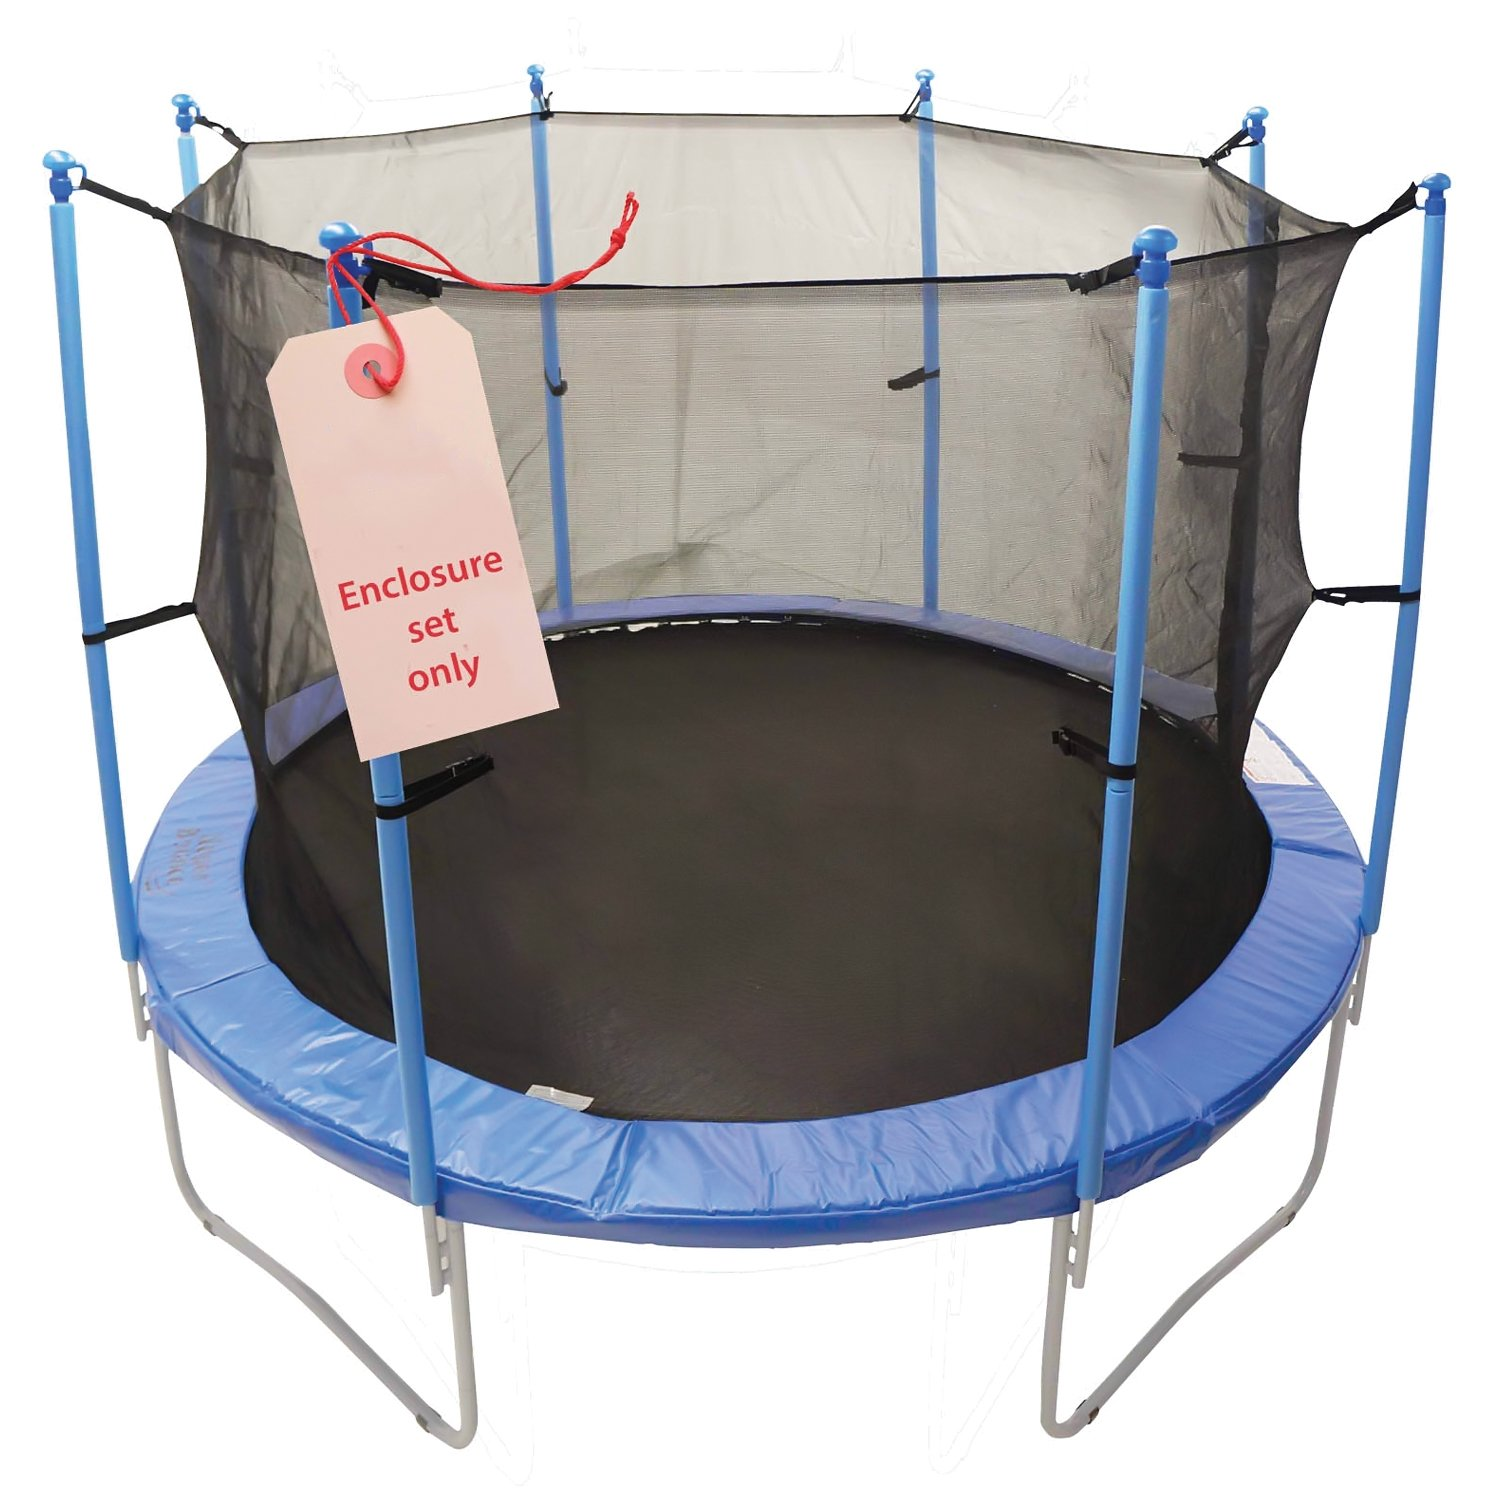 Upper Bounce 8 Pole Trampoline Enclosure Set to fit 13 FT. Trampoline Frames with set of 4 or 8 W-Shaped Legs (Trampoline Not Included)